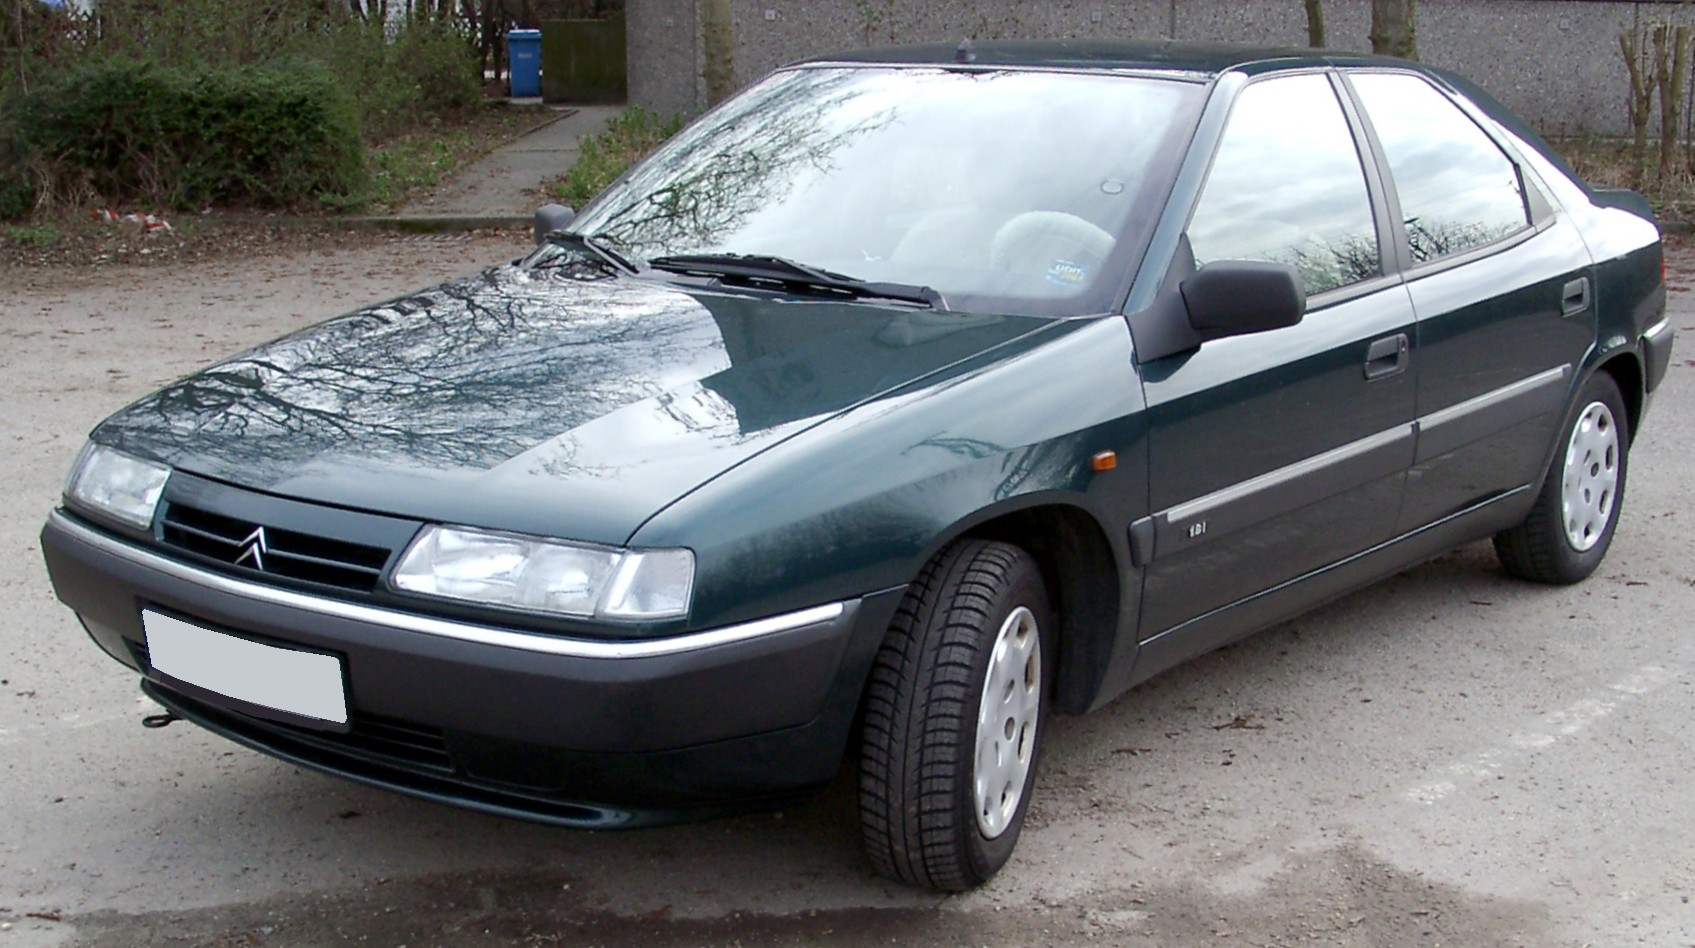 Citroen Xantia I 1992 - 1998 Hatchback 5 door #5